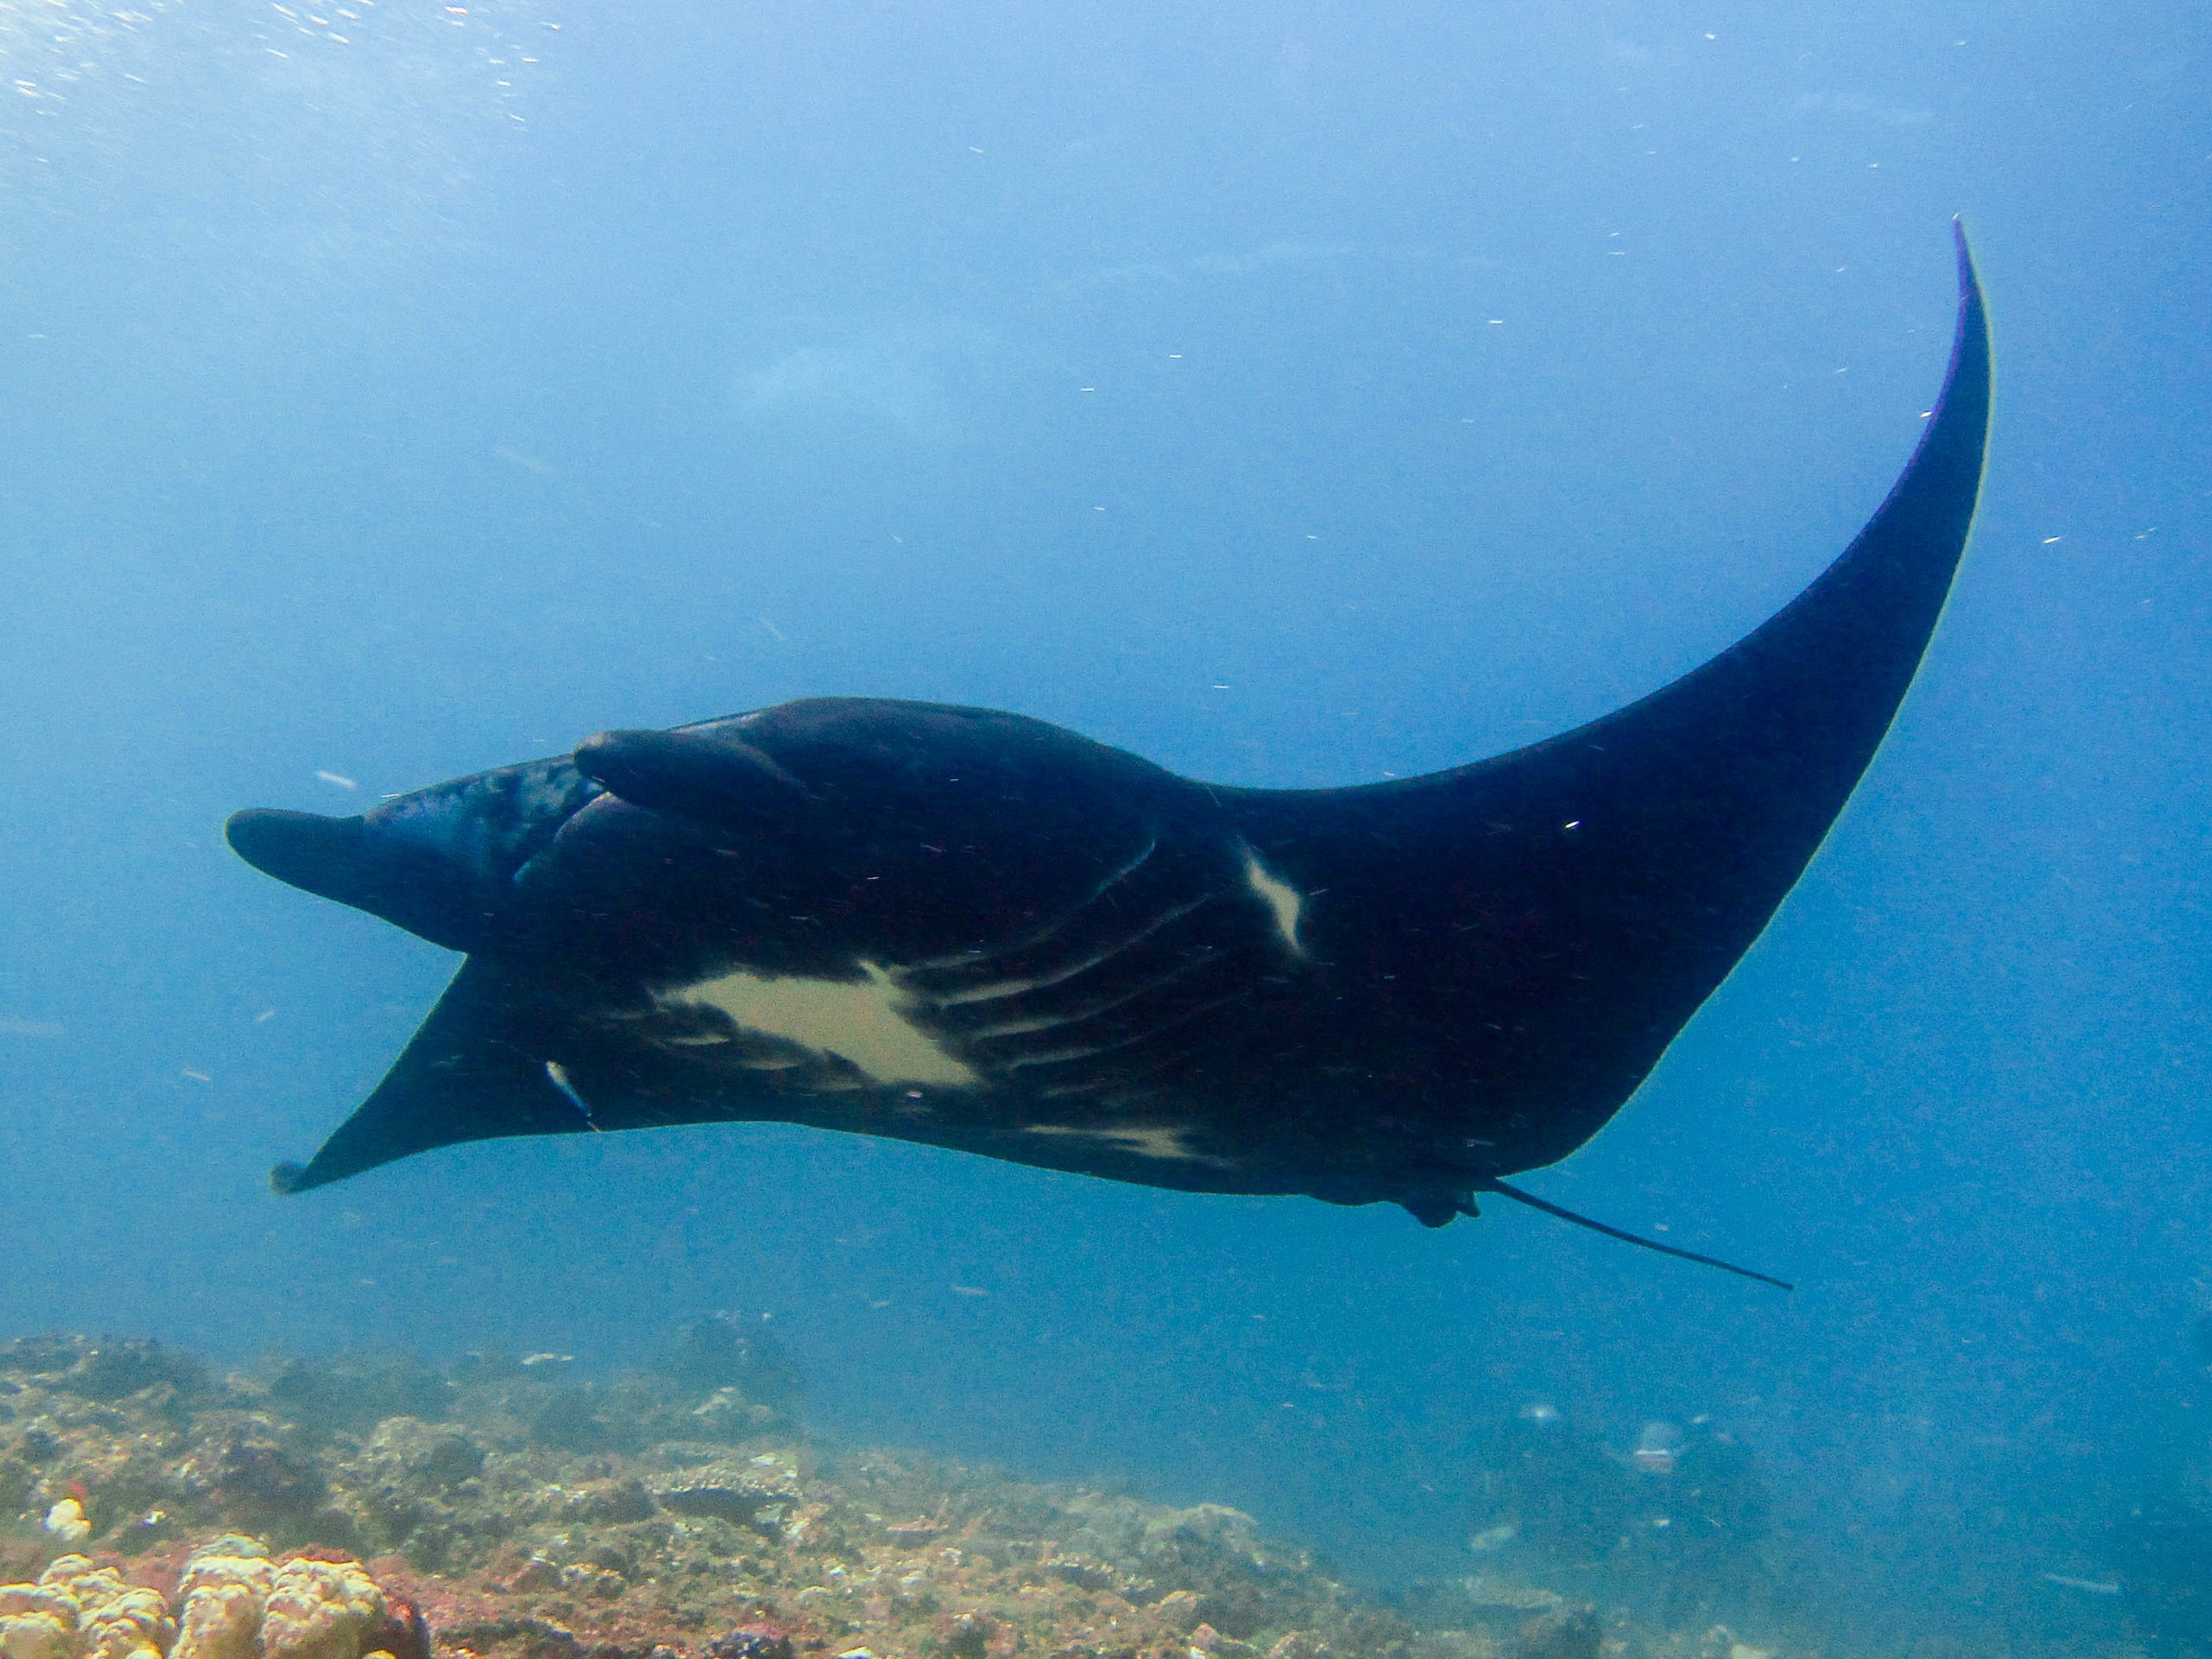 Diving with mantas is something every diver needs to experience. Diving with mantas will take your breath away